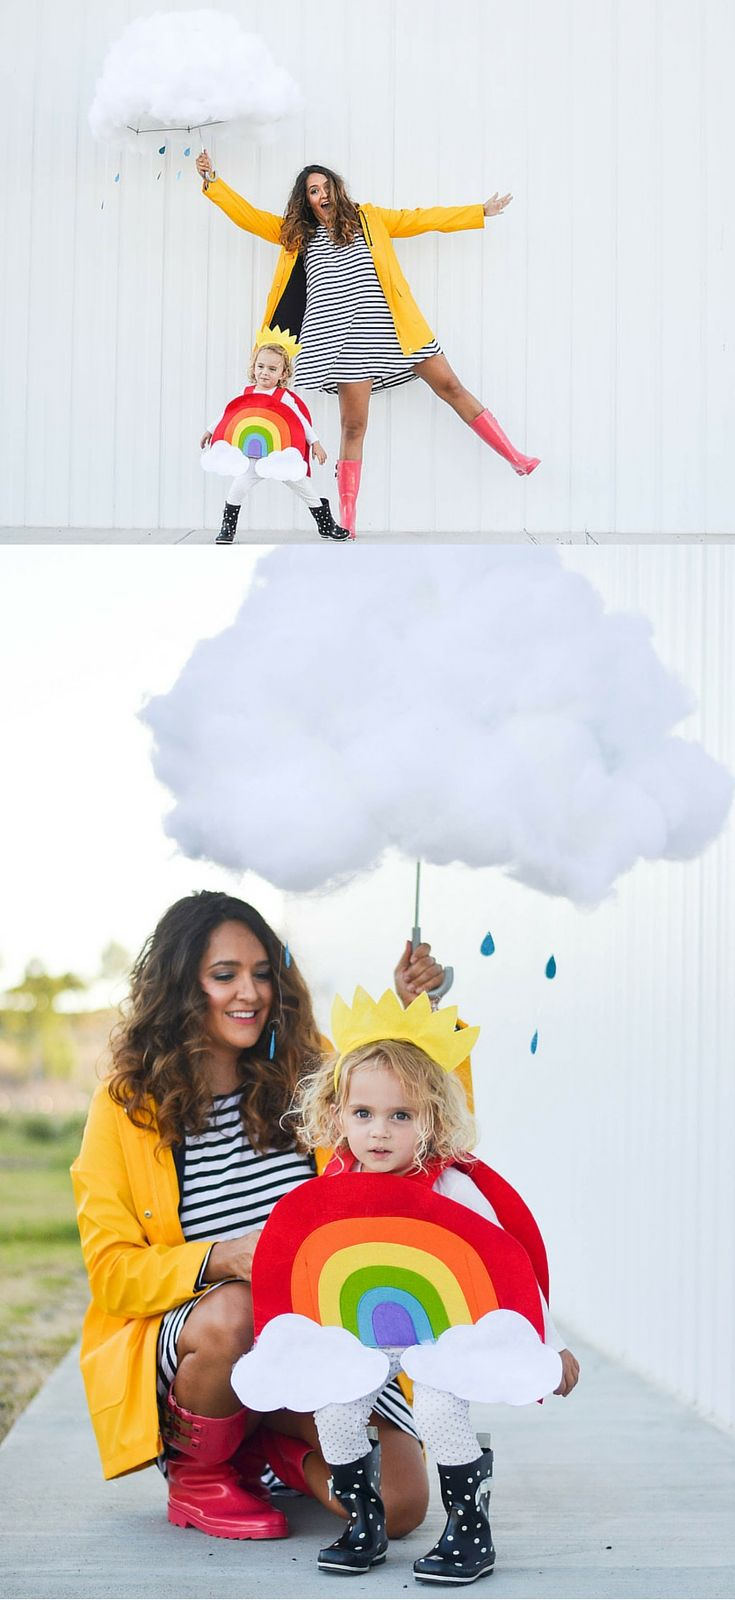 Creative Mom and Kid Halloween Costumes - Rainbow and Cloud